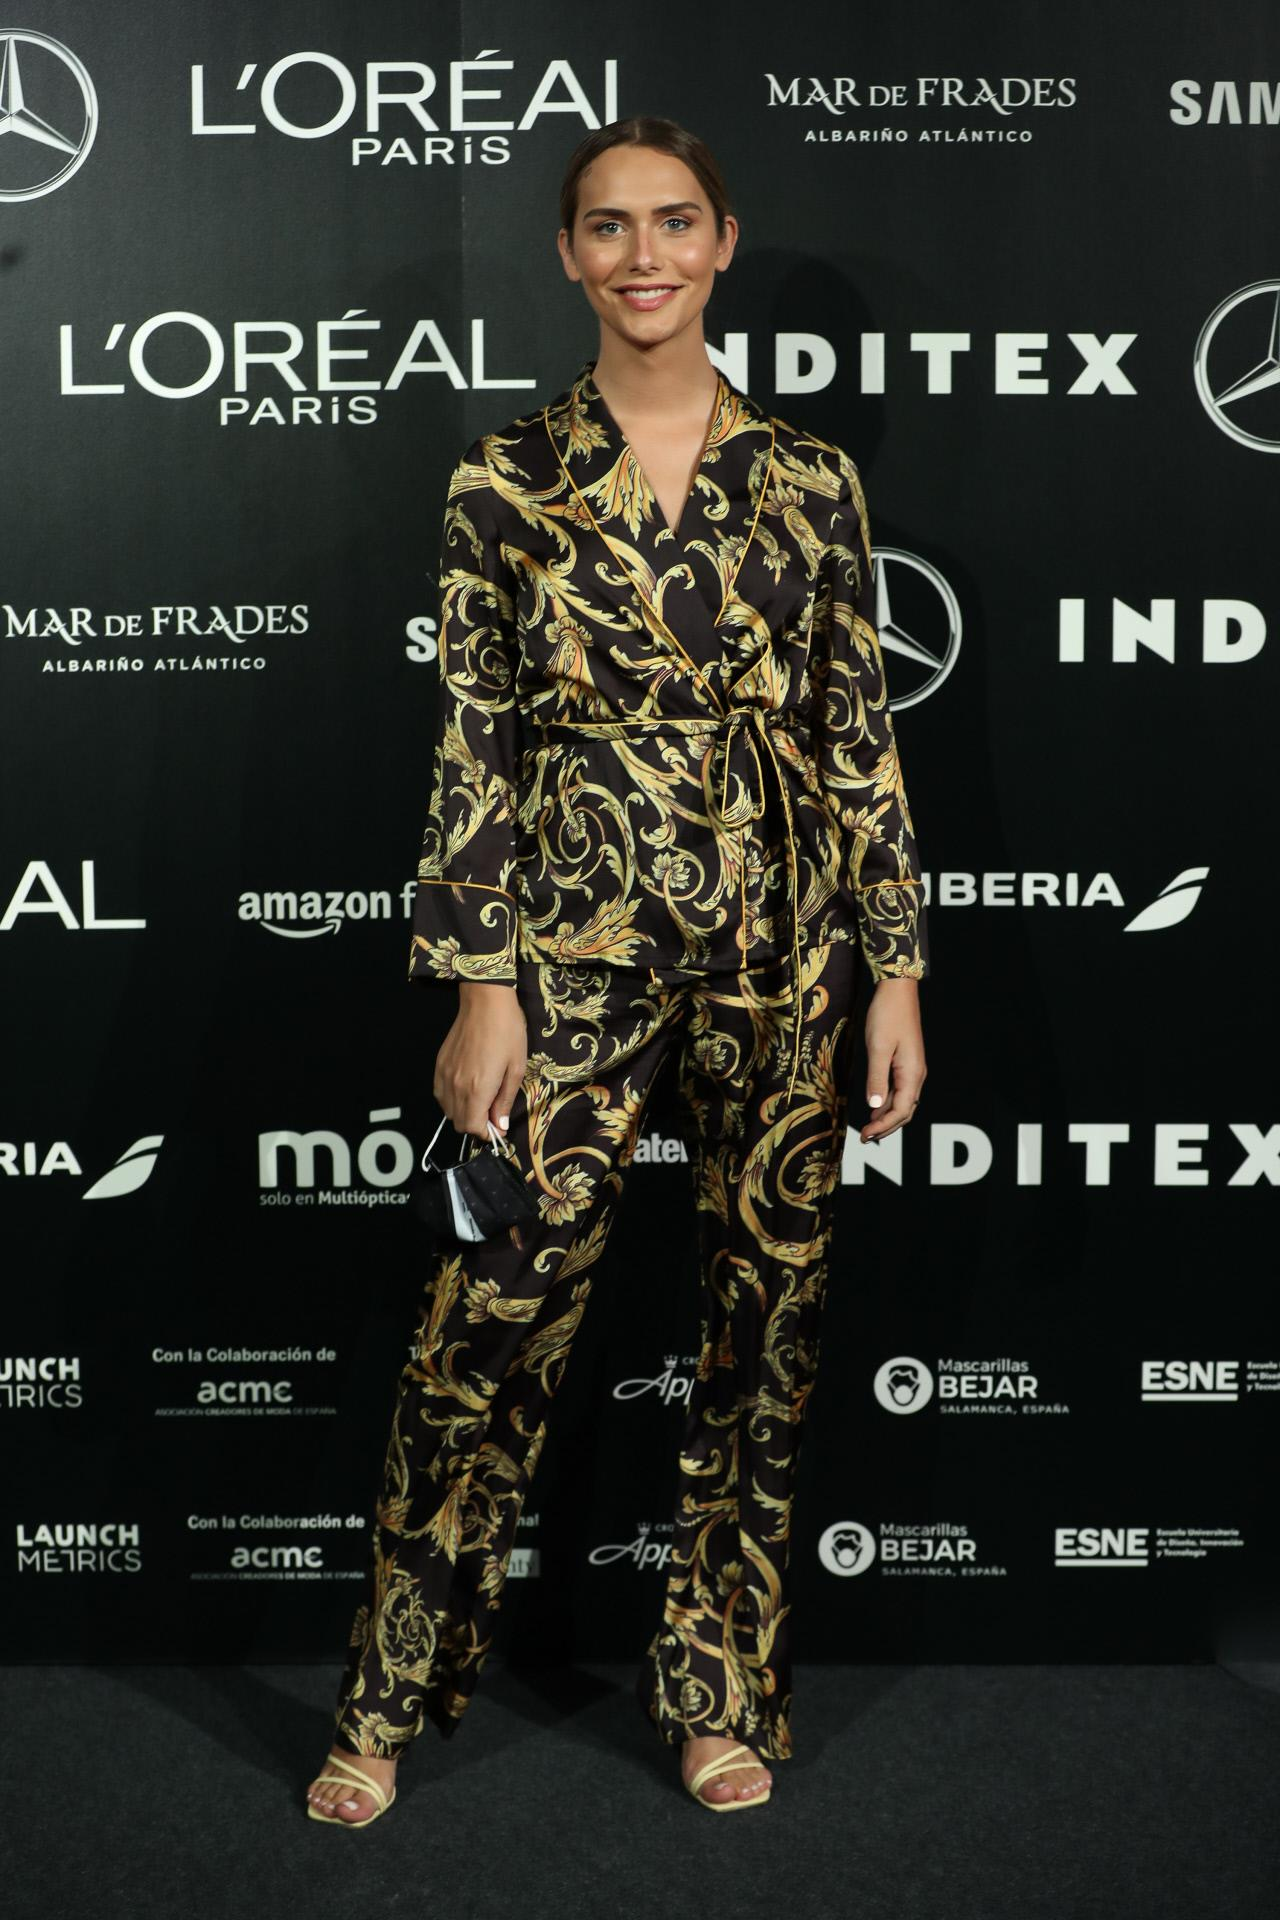 Ángela Ponce-Mercedes-Benz Fashion Week Madrid 2020